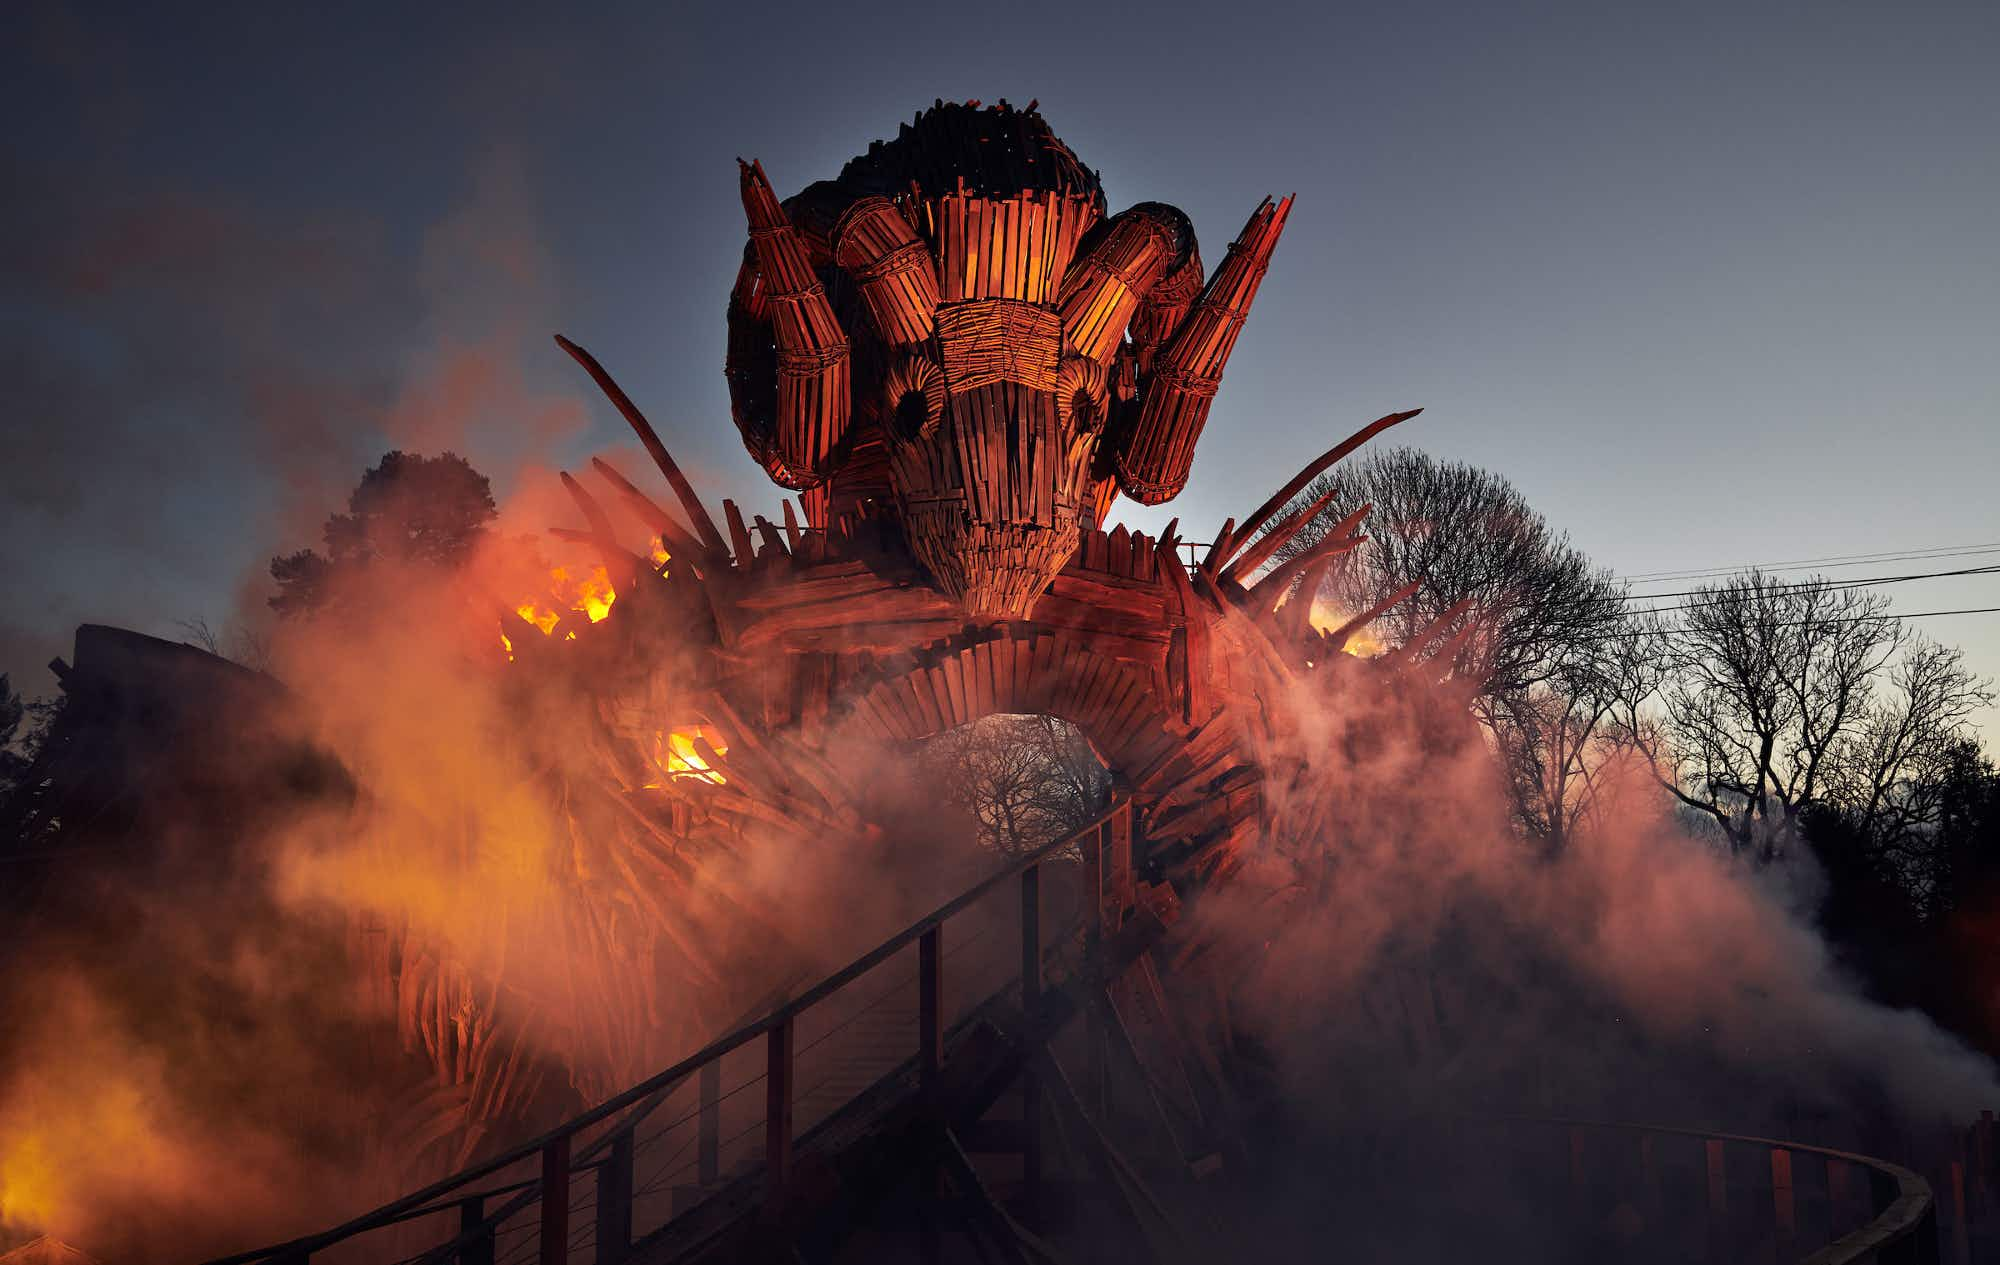 Alton Towers' new Wicker Man rollercoaster merges fire and wood